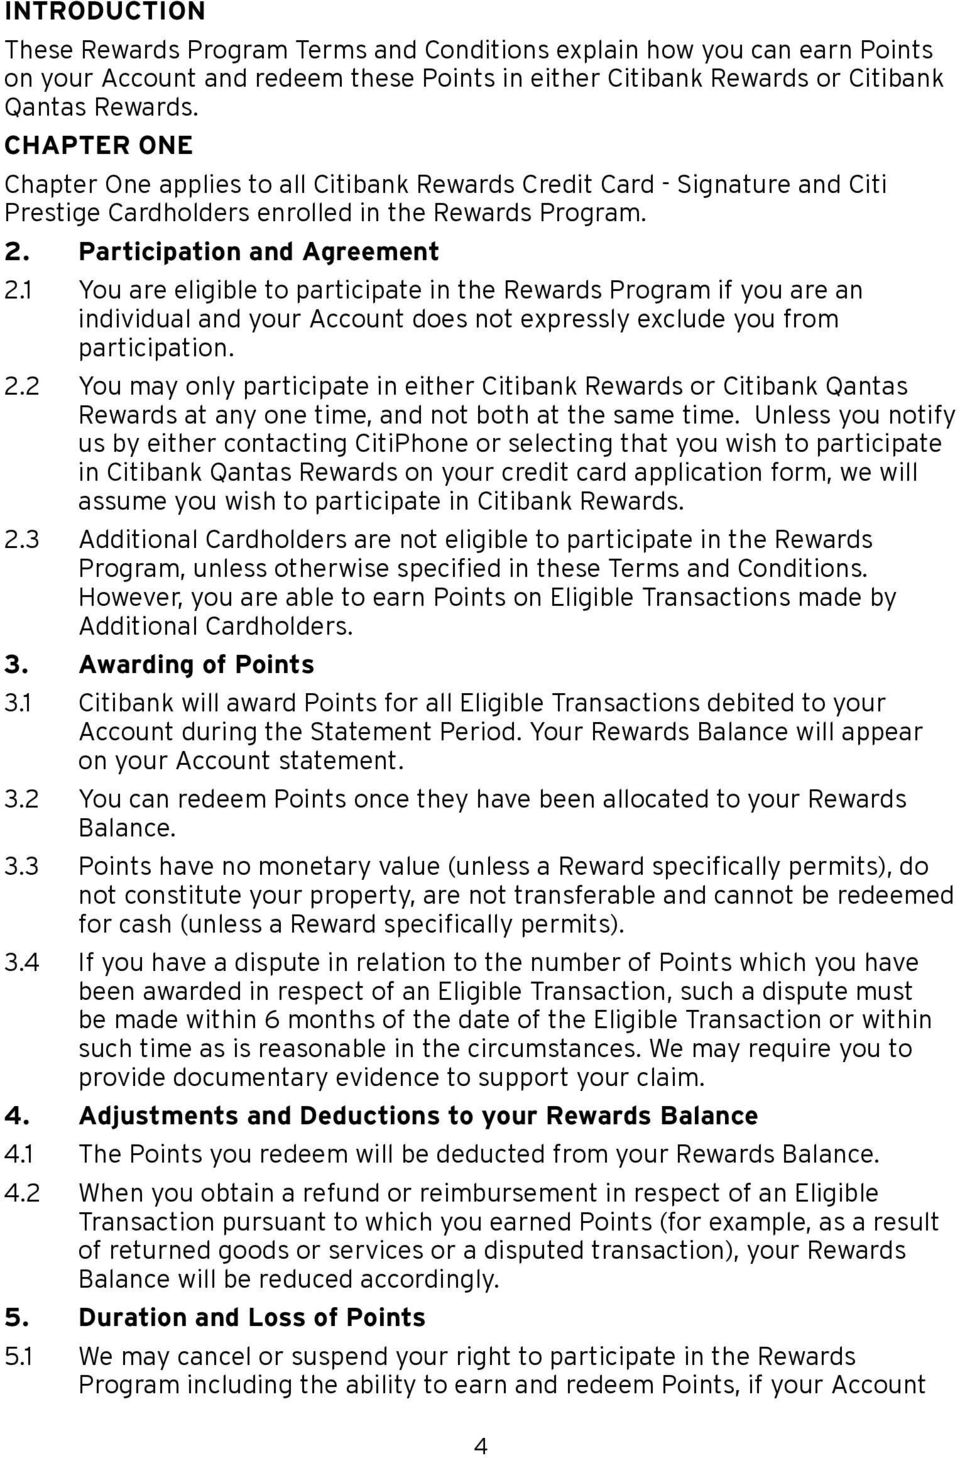 1 You are eligible to participate in the Rewards Program if you are an individual and your Account does not expressly exclude you from participation. 2.